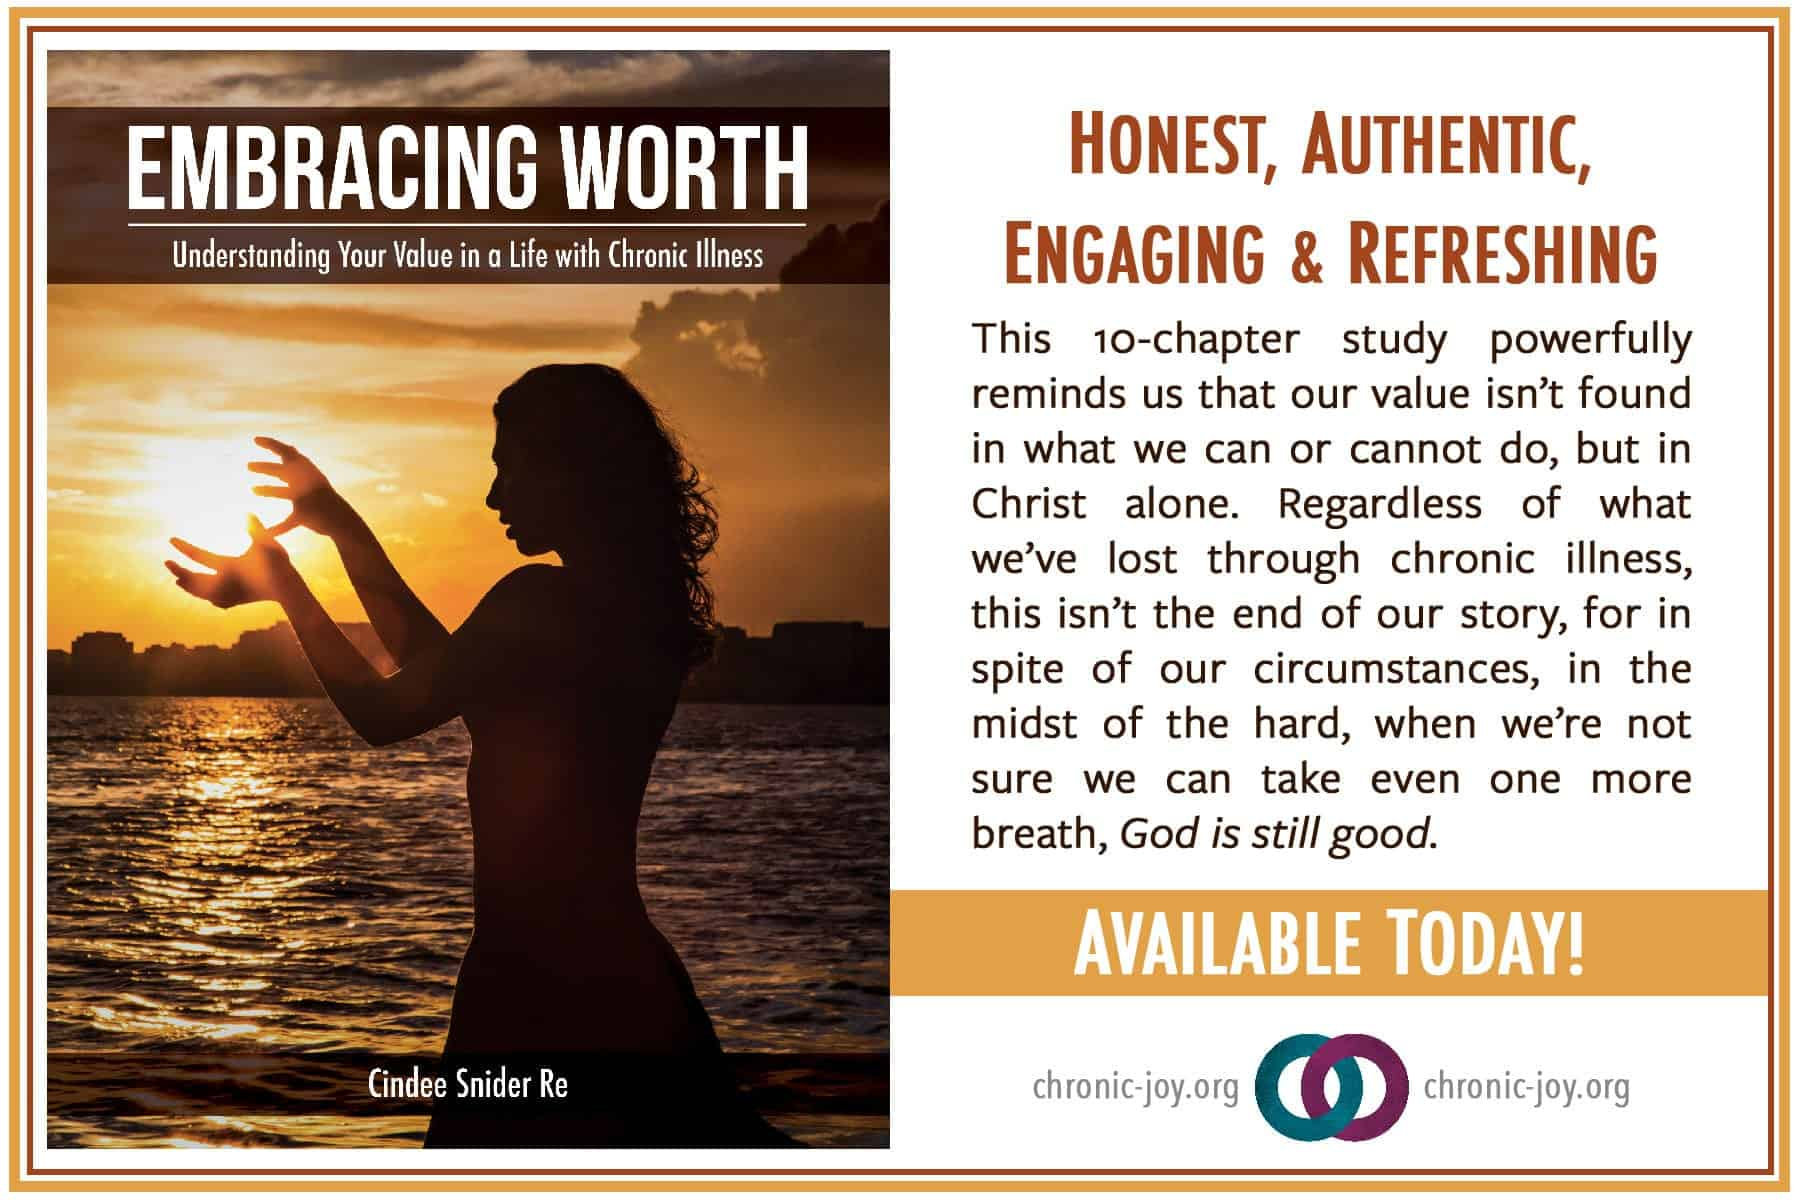 Welcoming Embracing Worth!